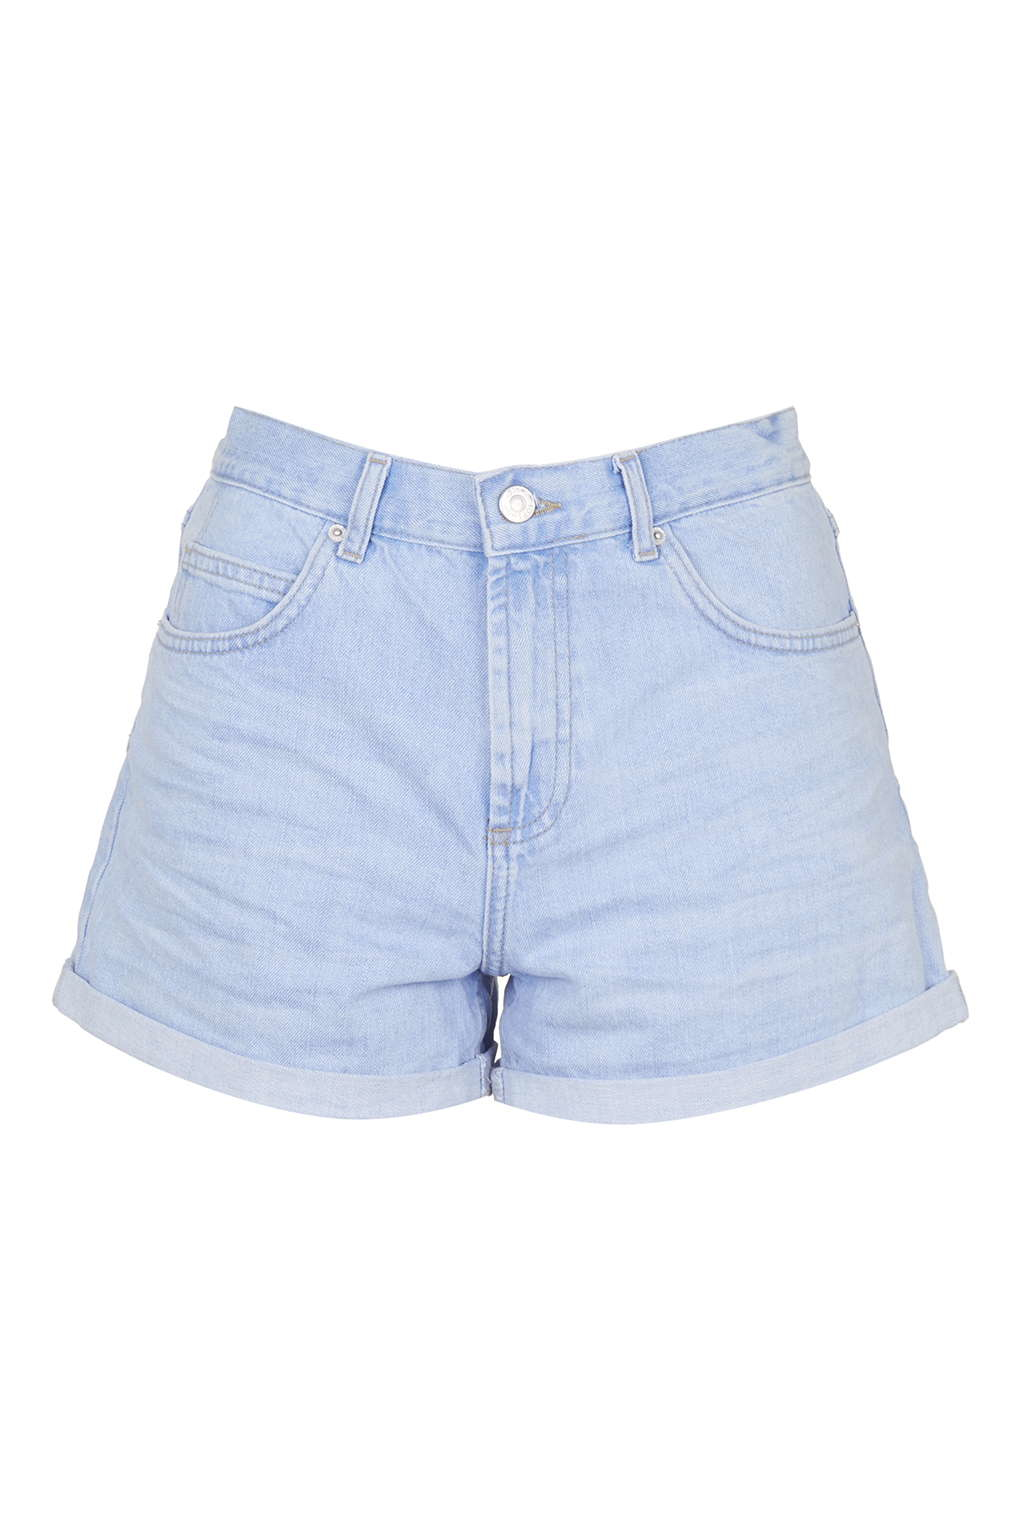 Topshop Moto Bright Blue Rose Shorts in Blue | Lyst